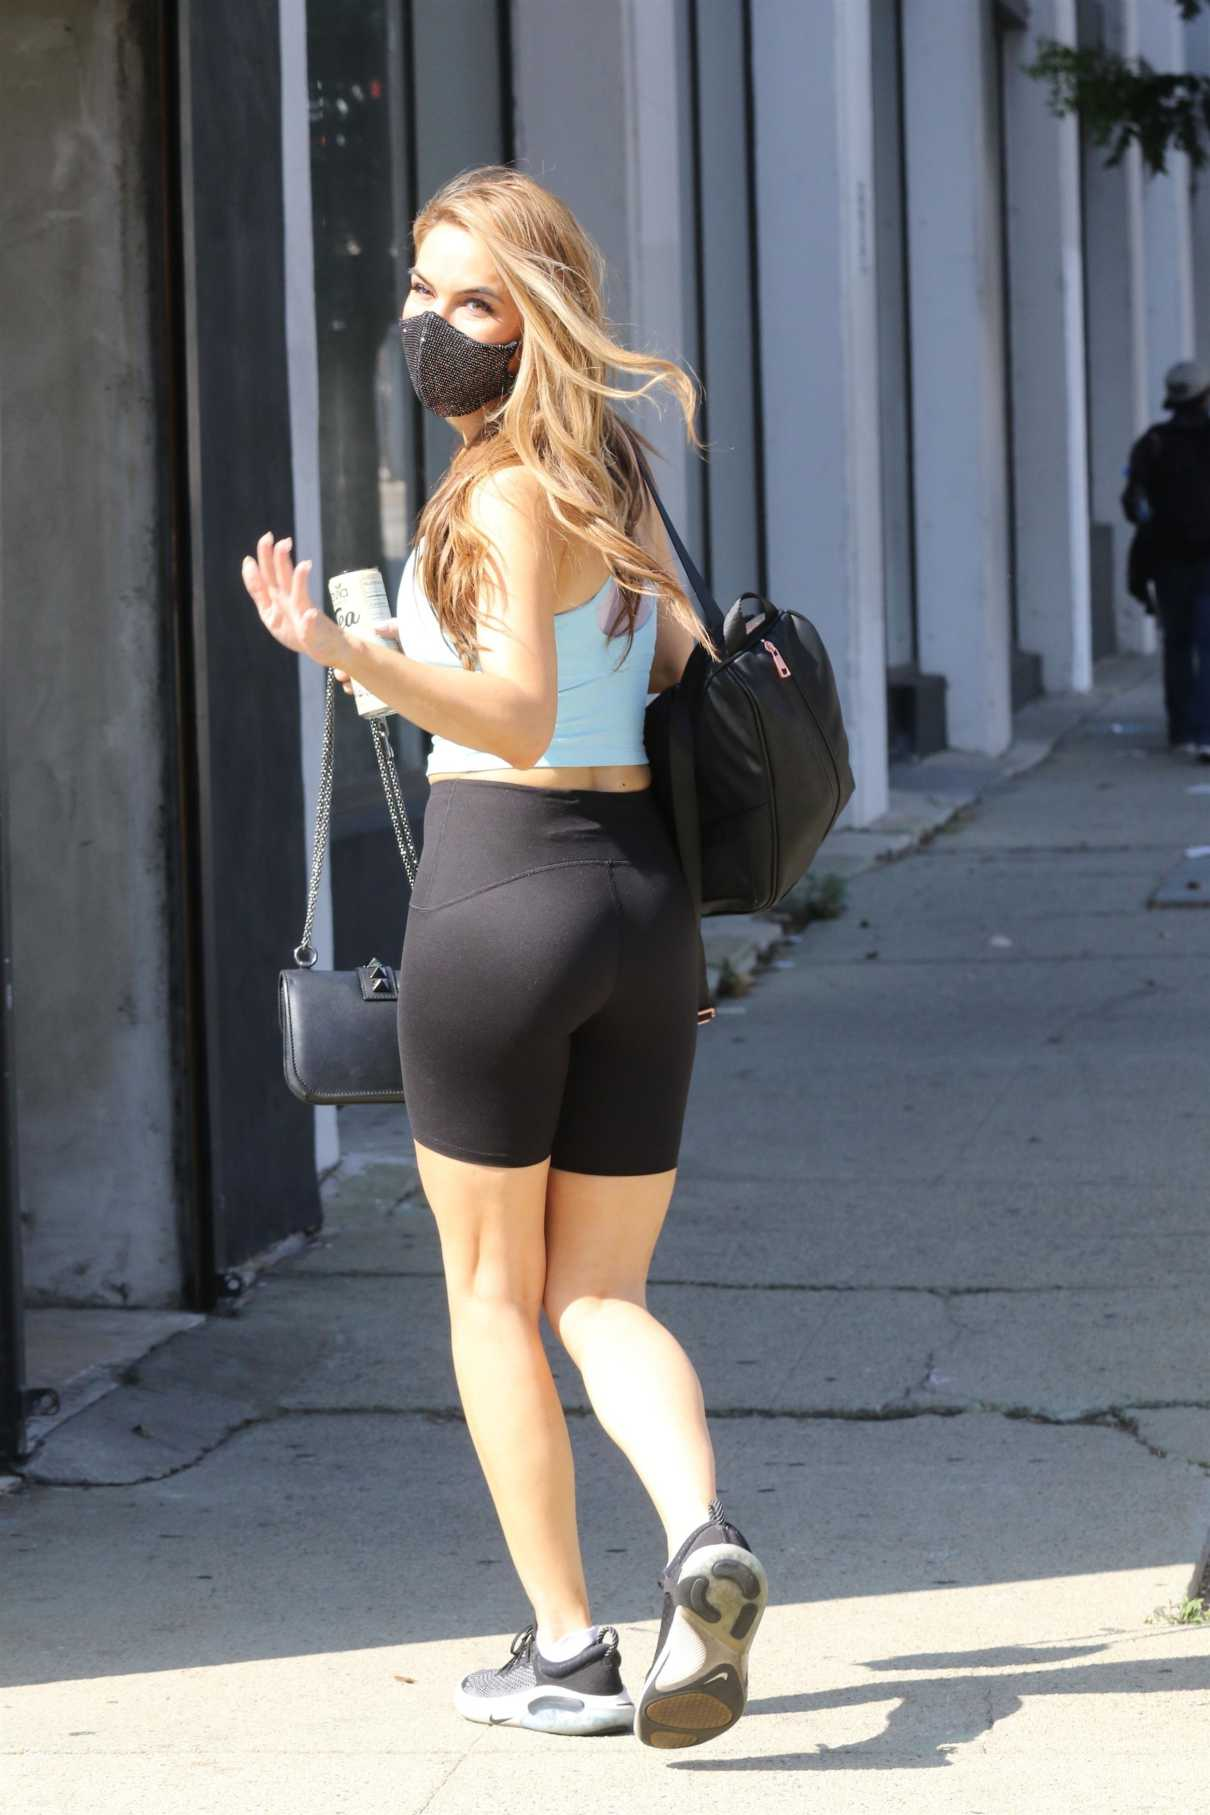 Chrishell Stause in a Black Spandex Shorts